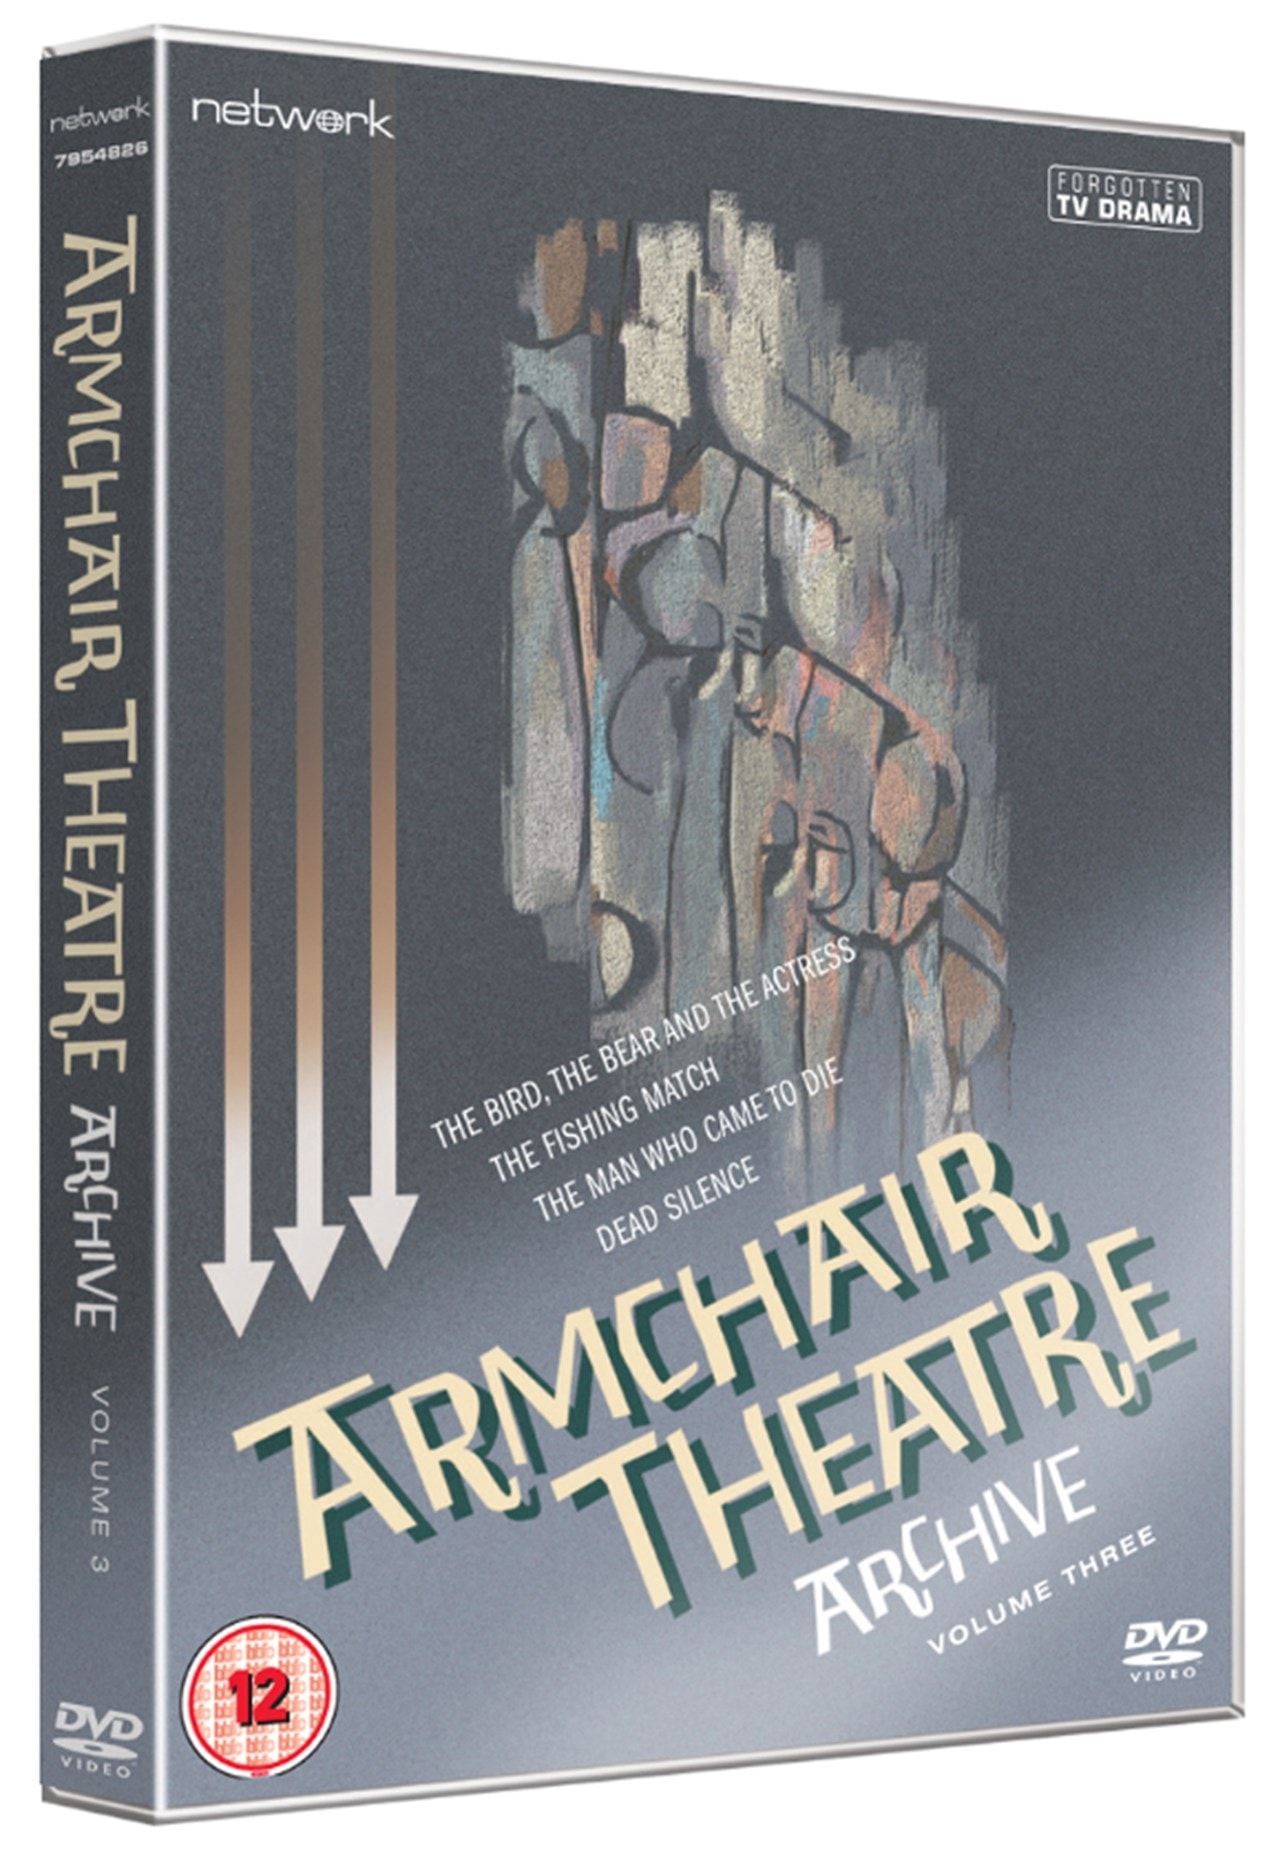 Armchair Theatre Archive: Volume 3 | DVD | Free shipping ...